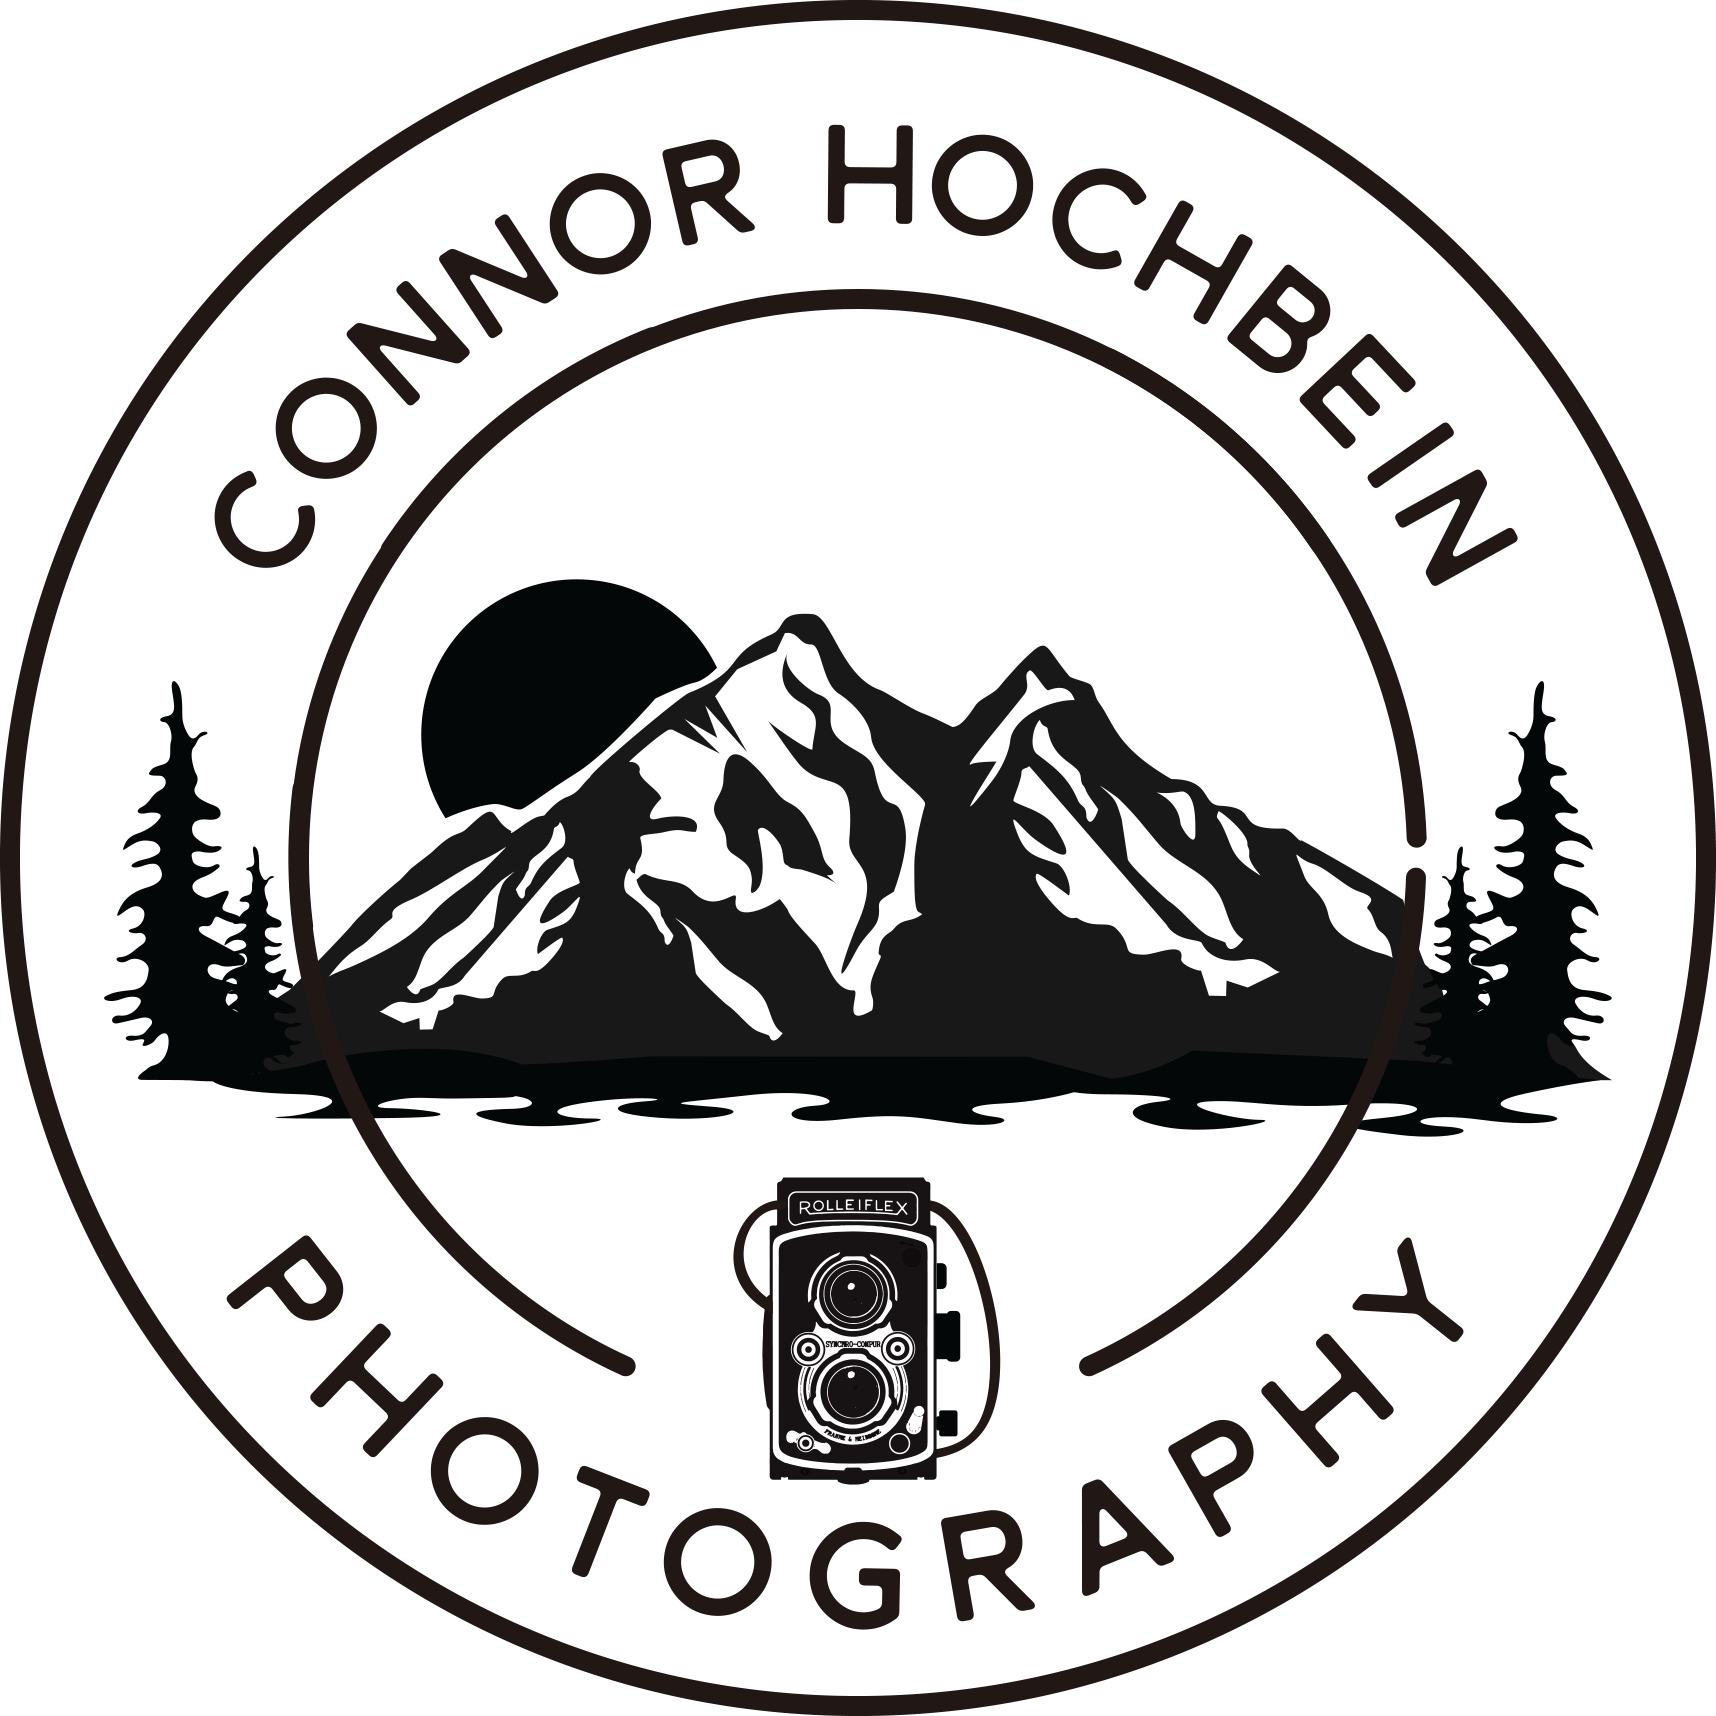 Connor Hochbein Photography